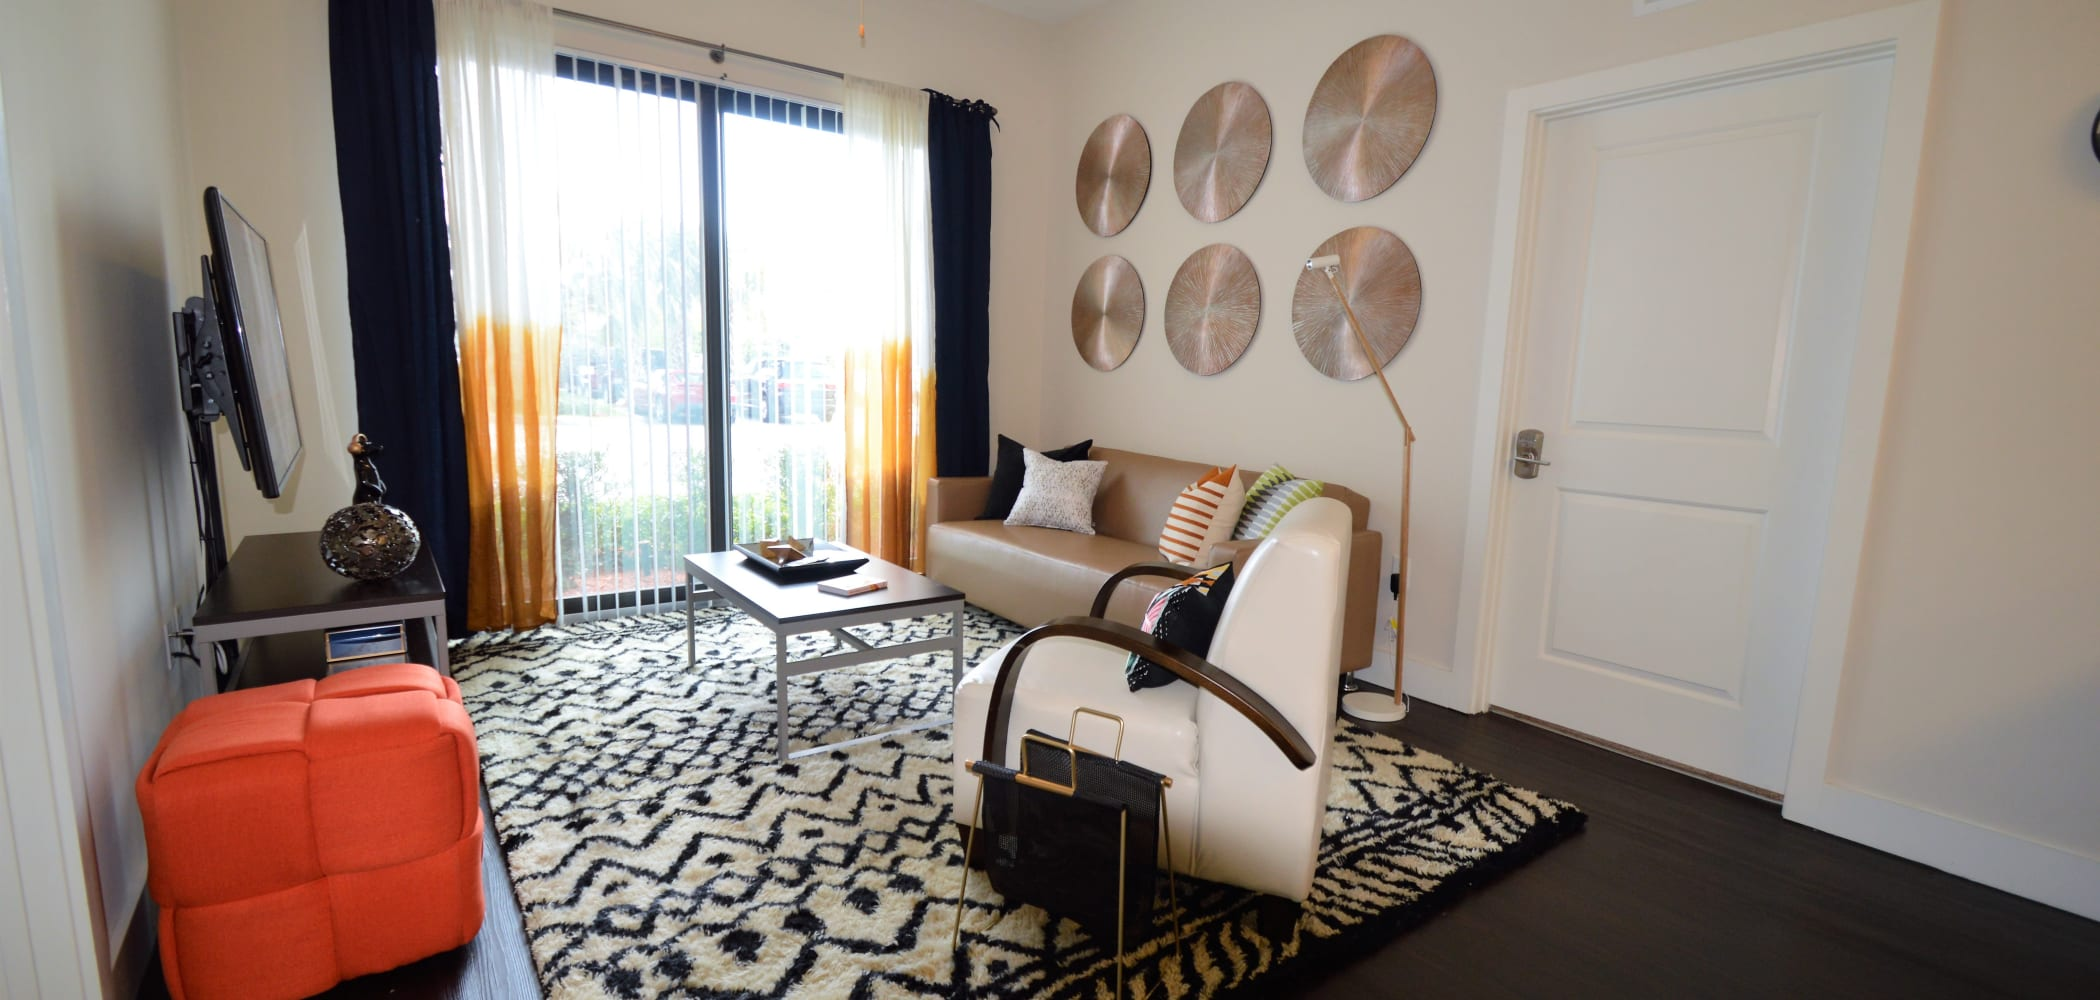 Spacious living room with tons of natural light at University Park in Boca Raton, Florida